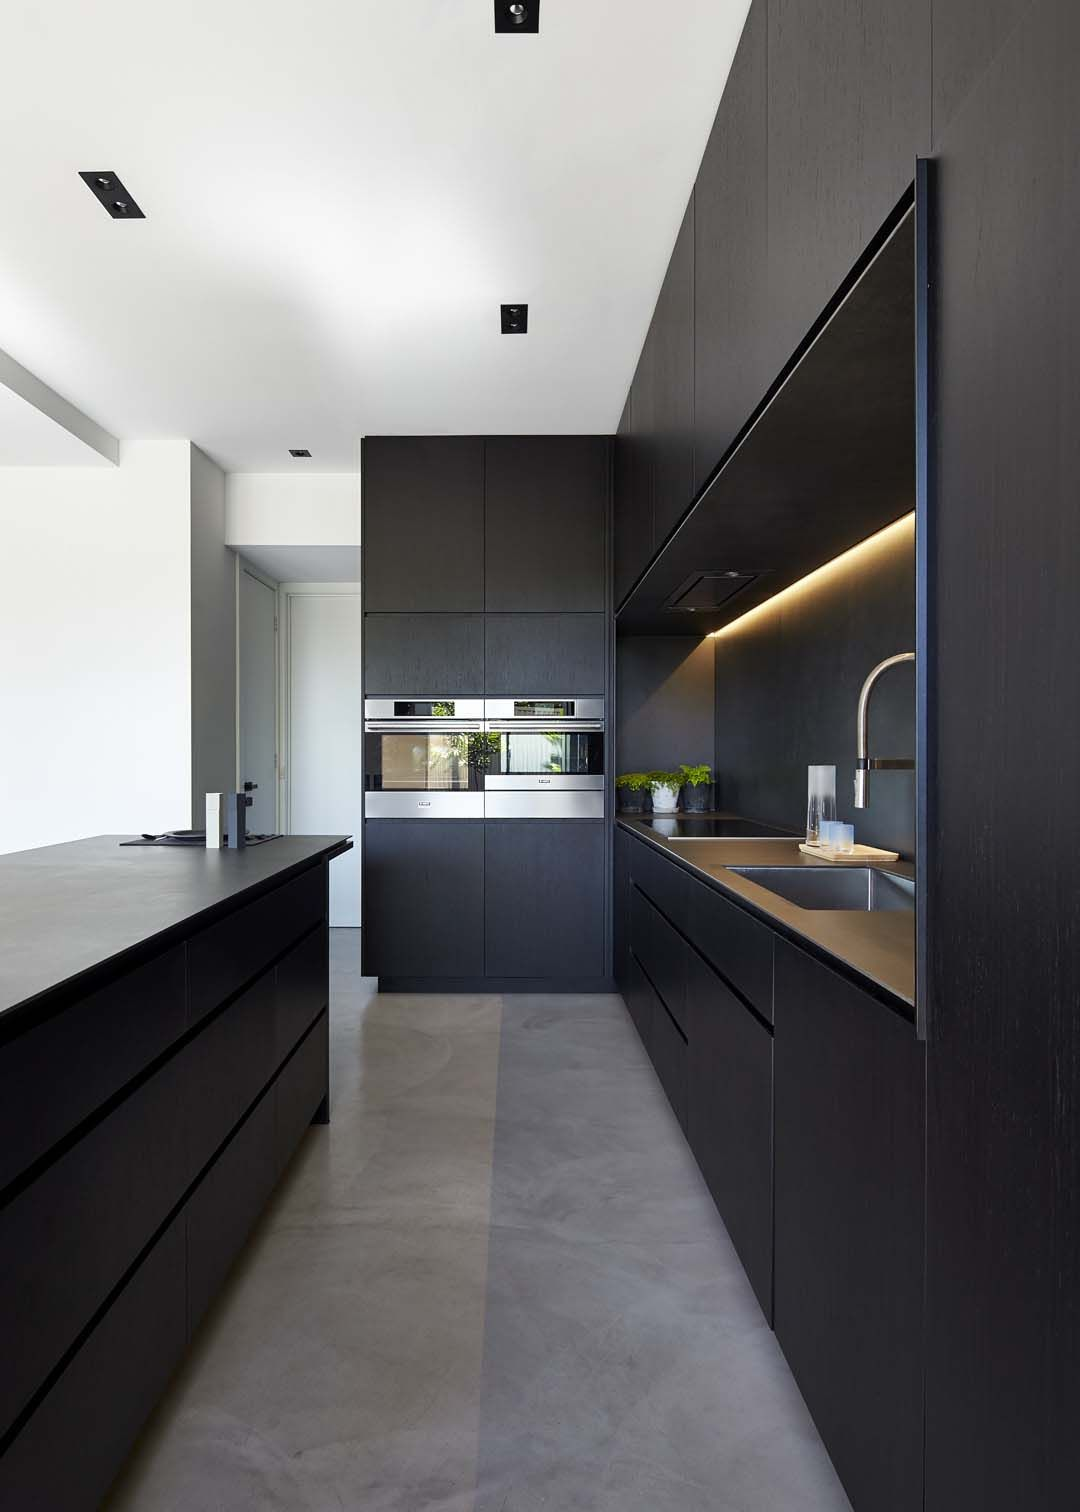 43 Dramatic black kitchens that make a bold statement | Pinterest ...